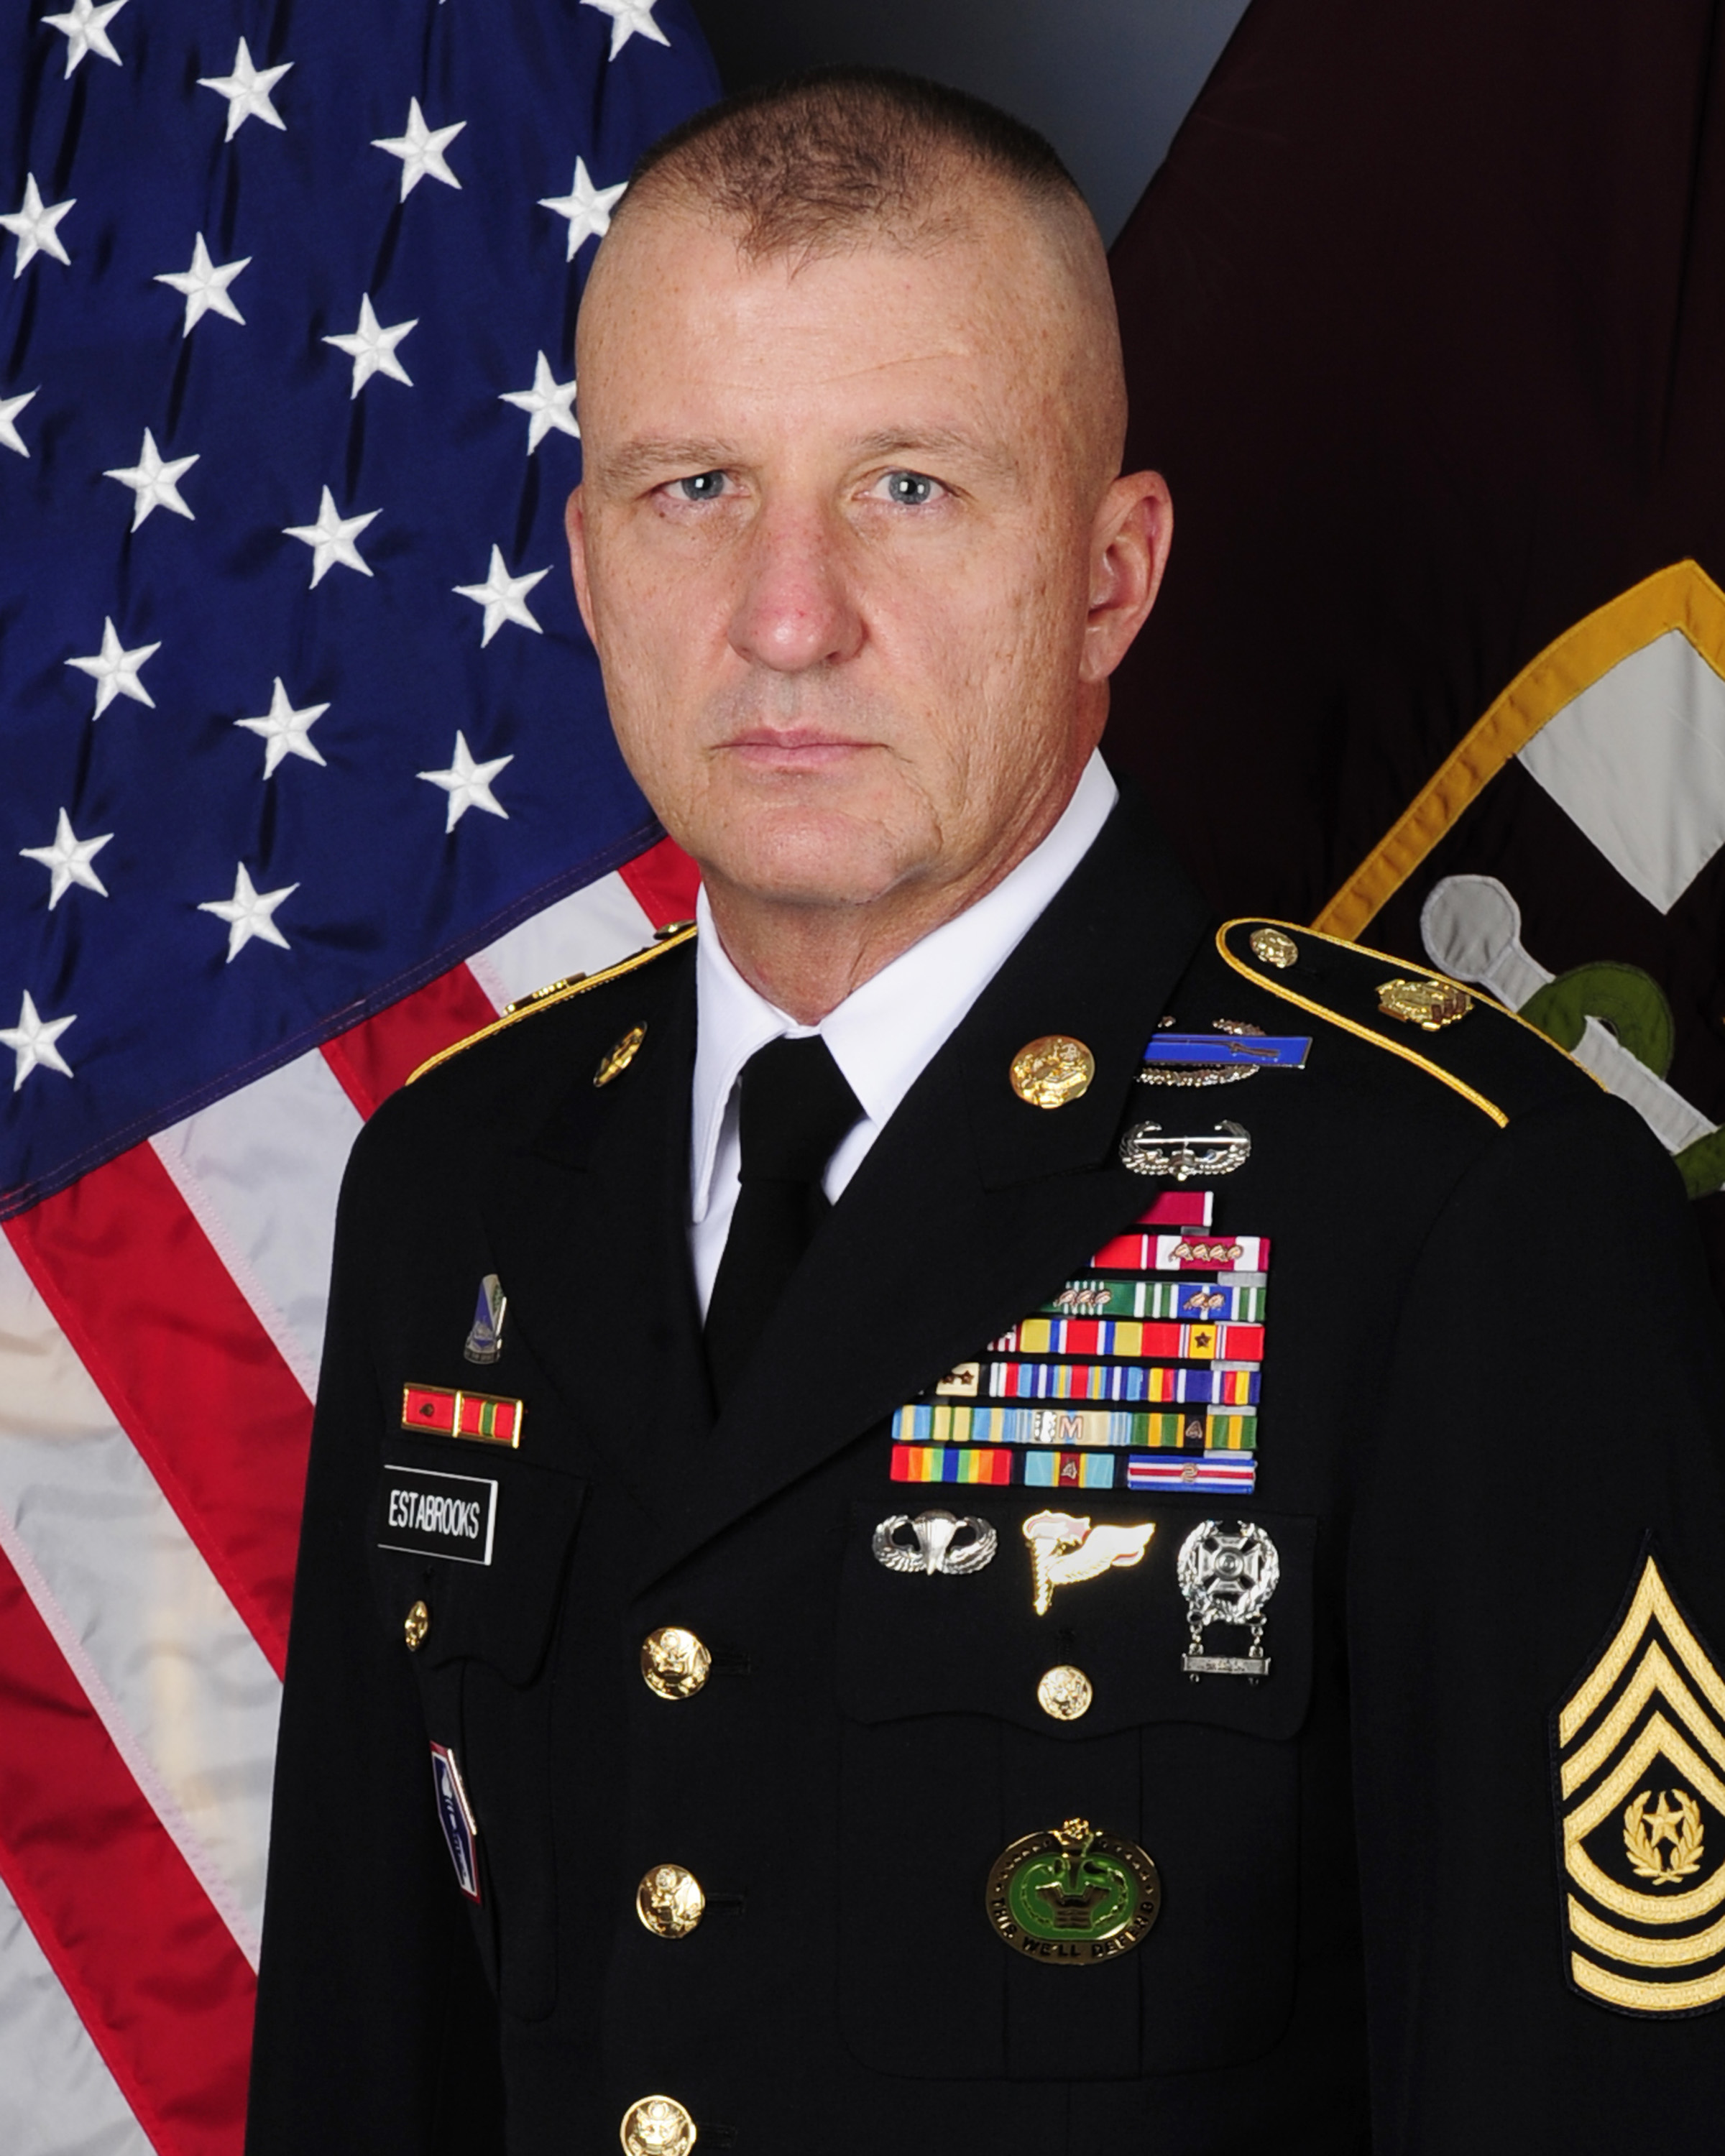 Best Military Branch To Join >> Command Sergeant Major Harold P. Estabrooks > U.S. Army Reserve > Article View